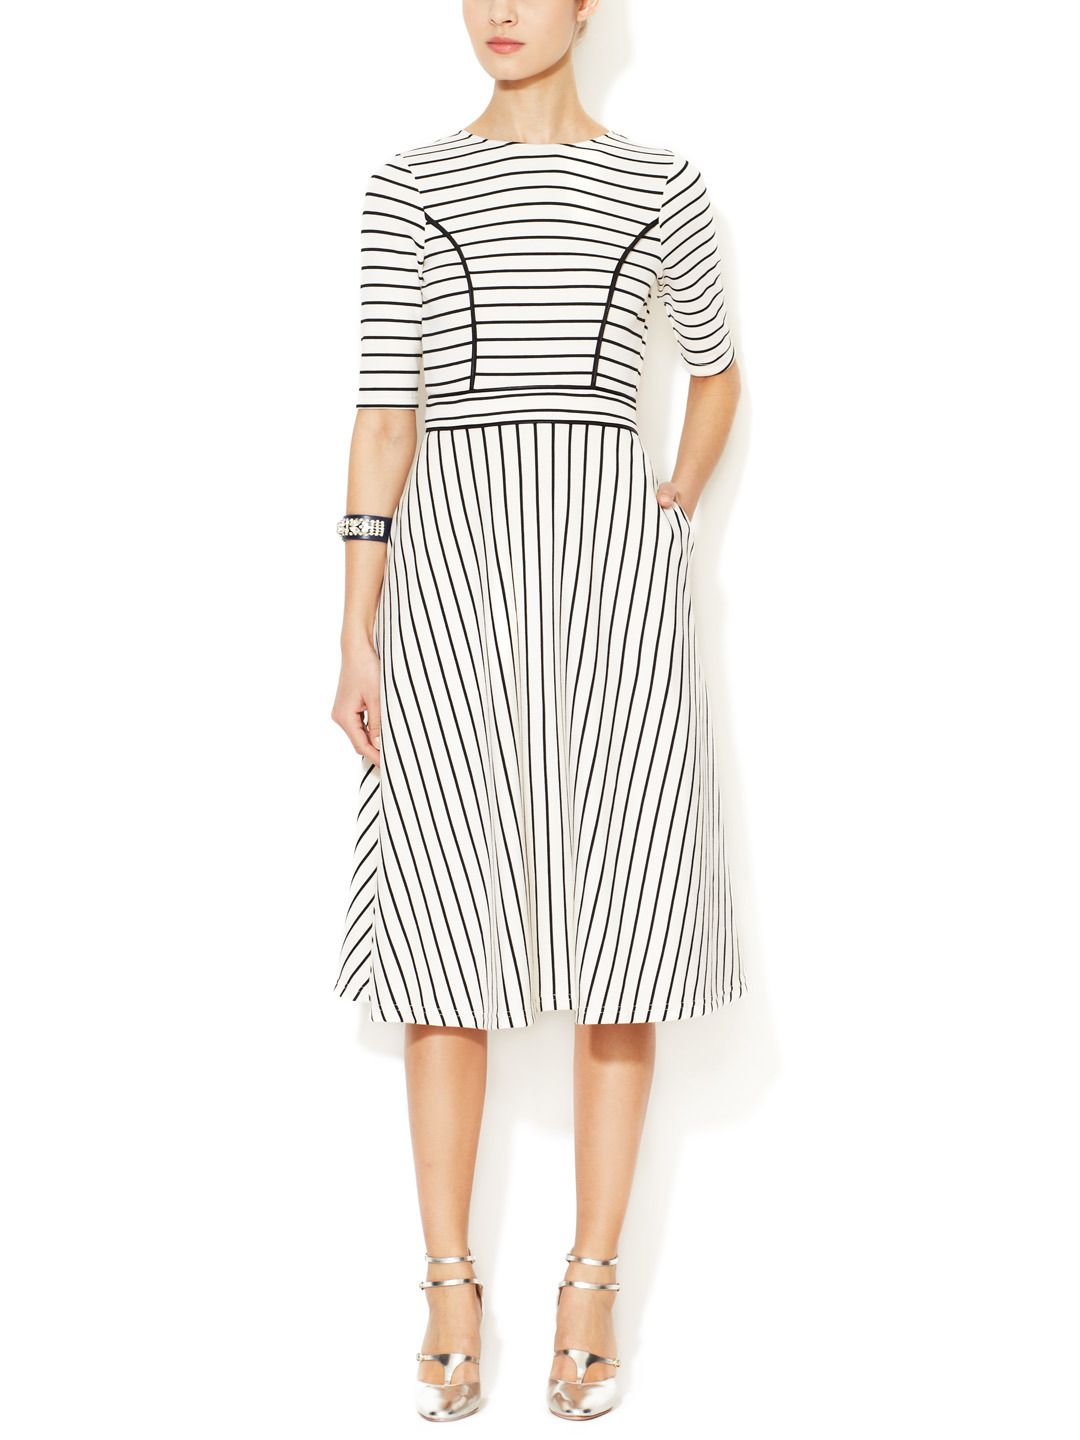 Striped A Line Dress By Cynthia Rowley At Gilt